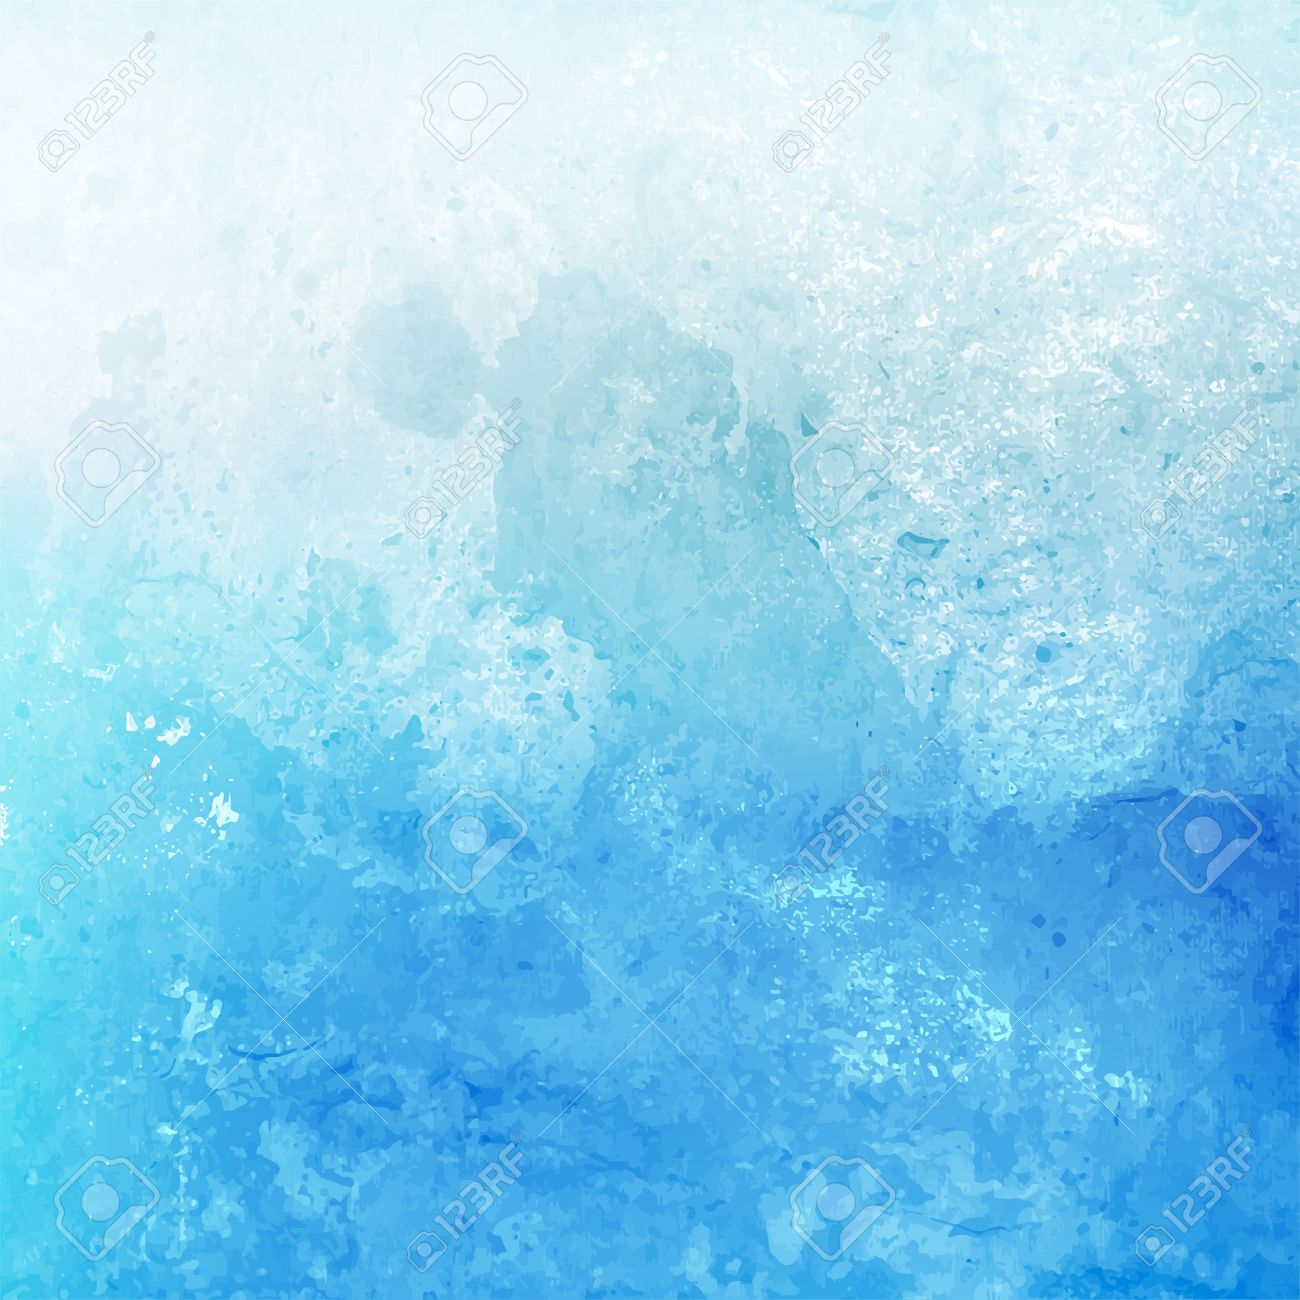 blue background stains watercolor paint free design to design